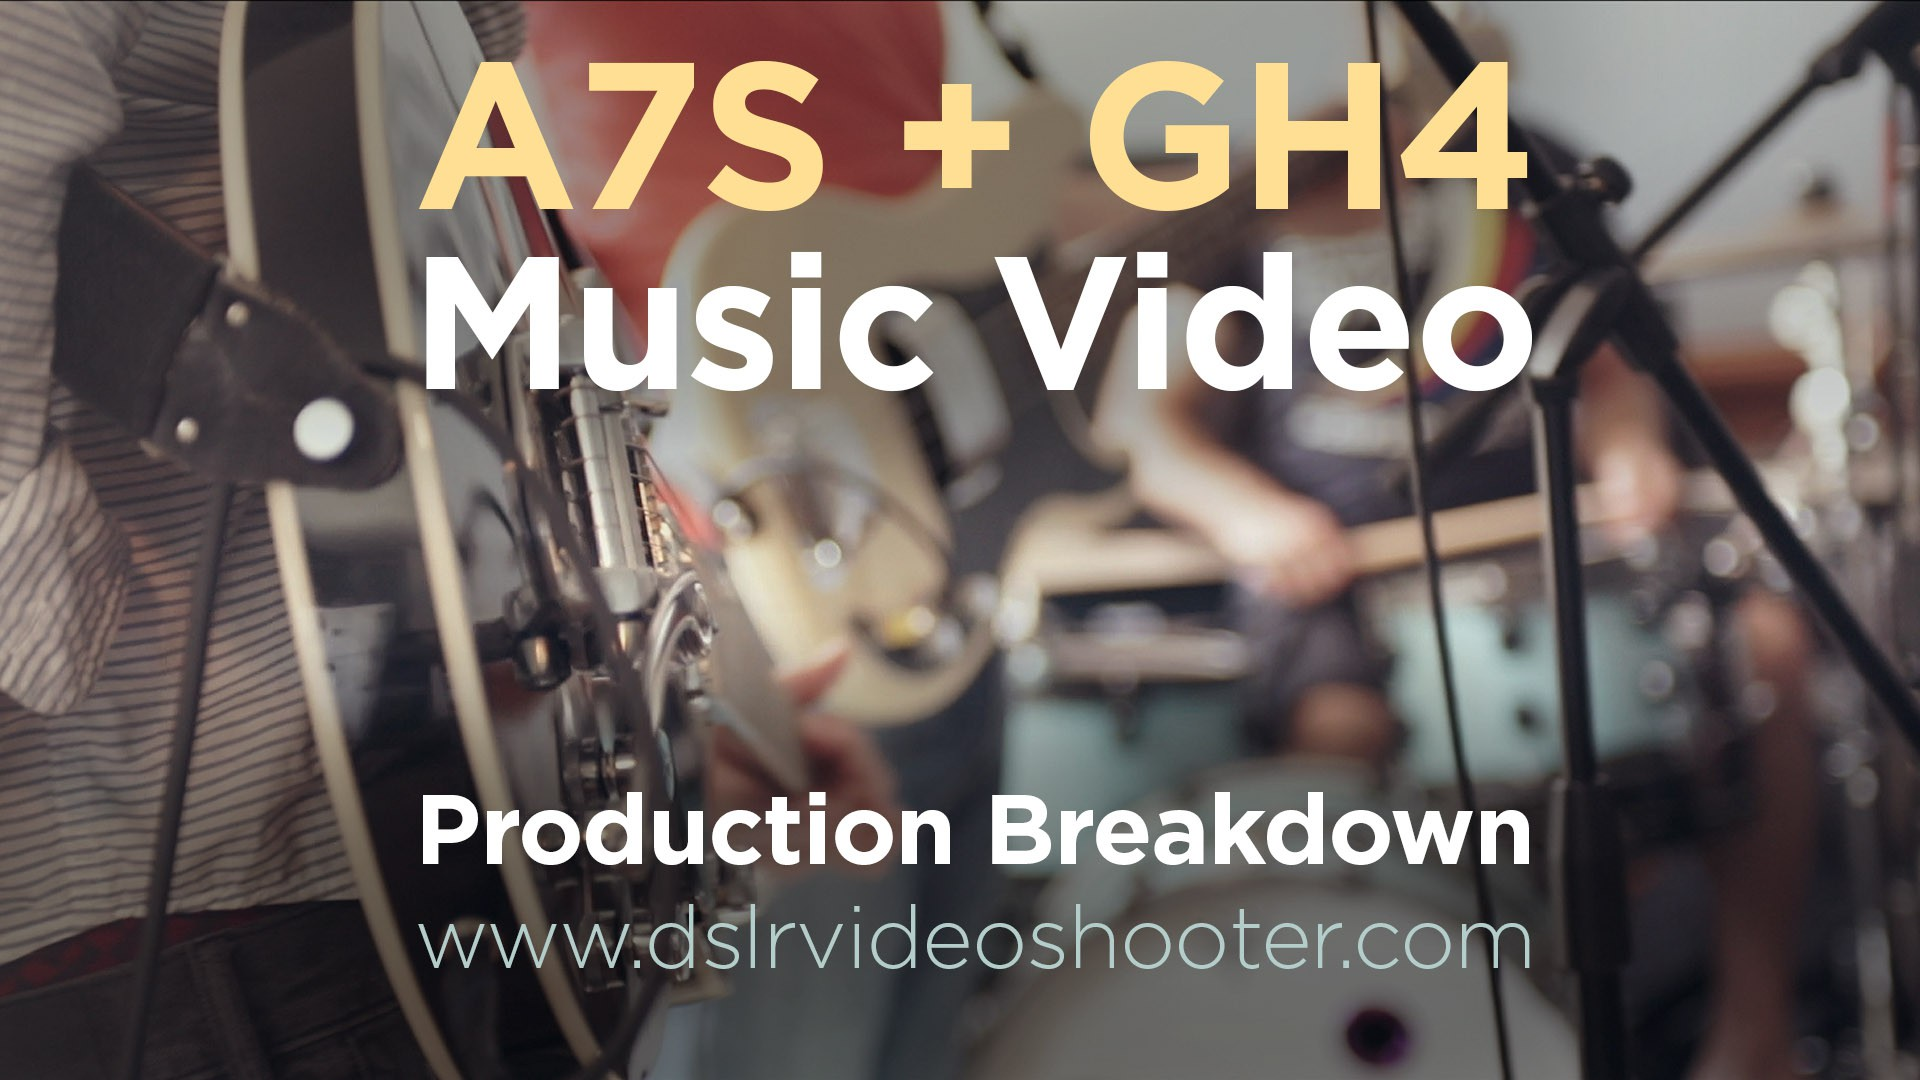 A7s and GH4 Music Video Production Breakdown